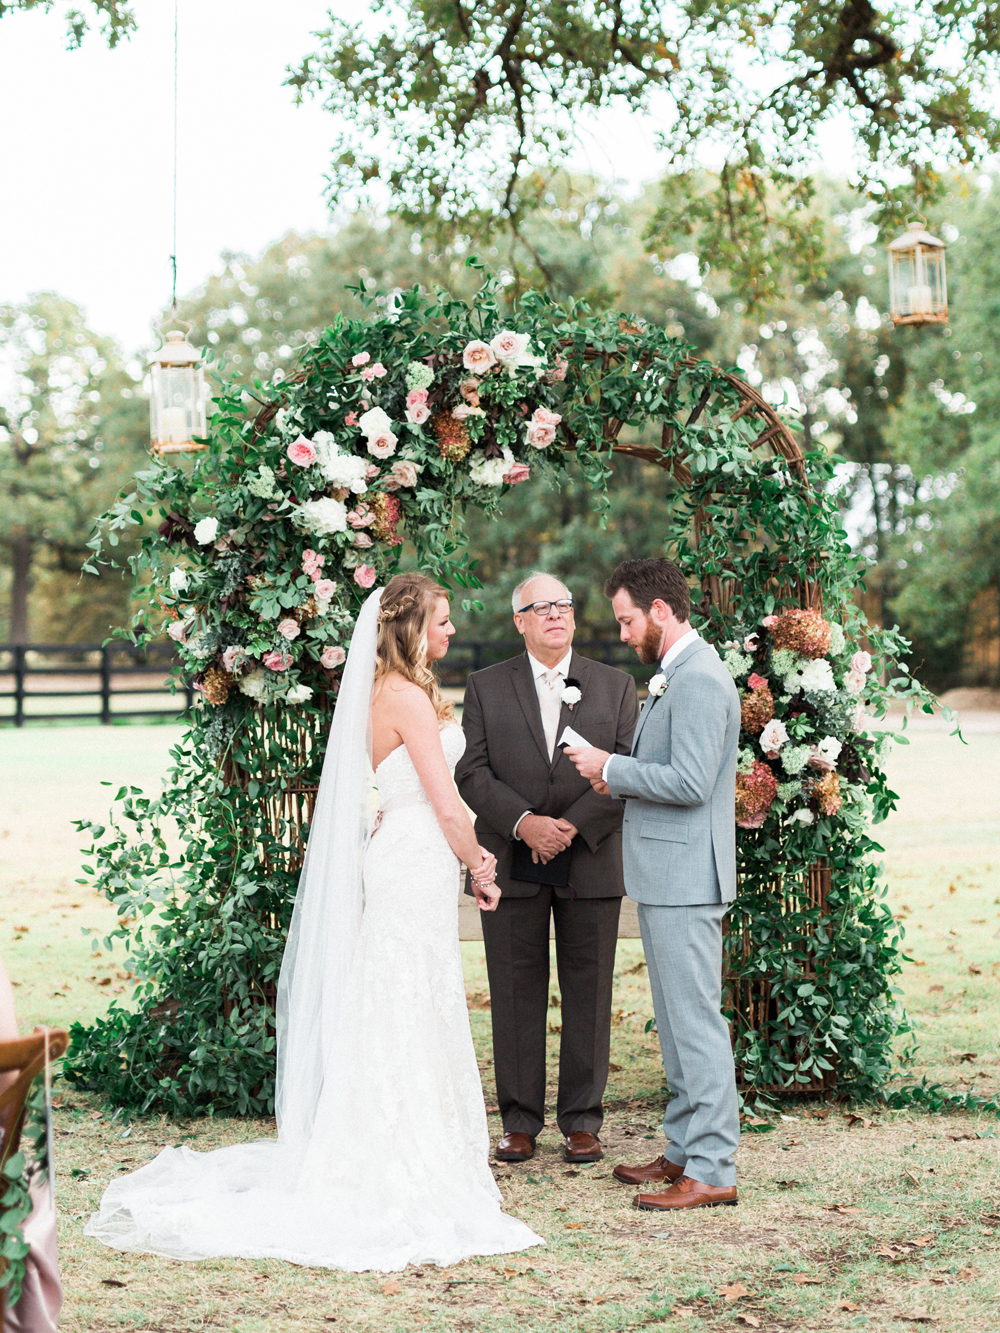 wedding ceremonies - photo by Elisabeth Carol Photography http://ruffledblog.com/picturesque-garden-wedding-at-white-sparrow-barn